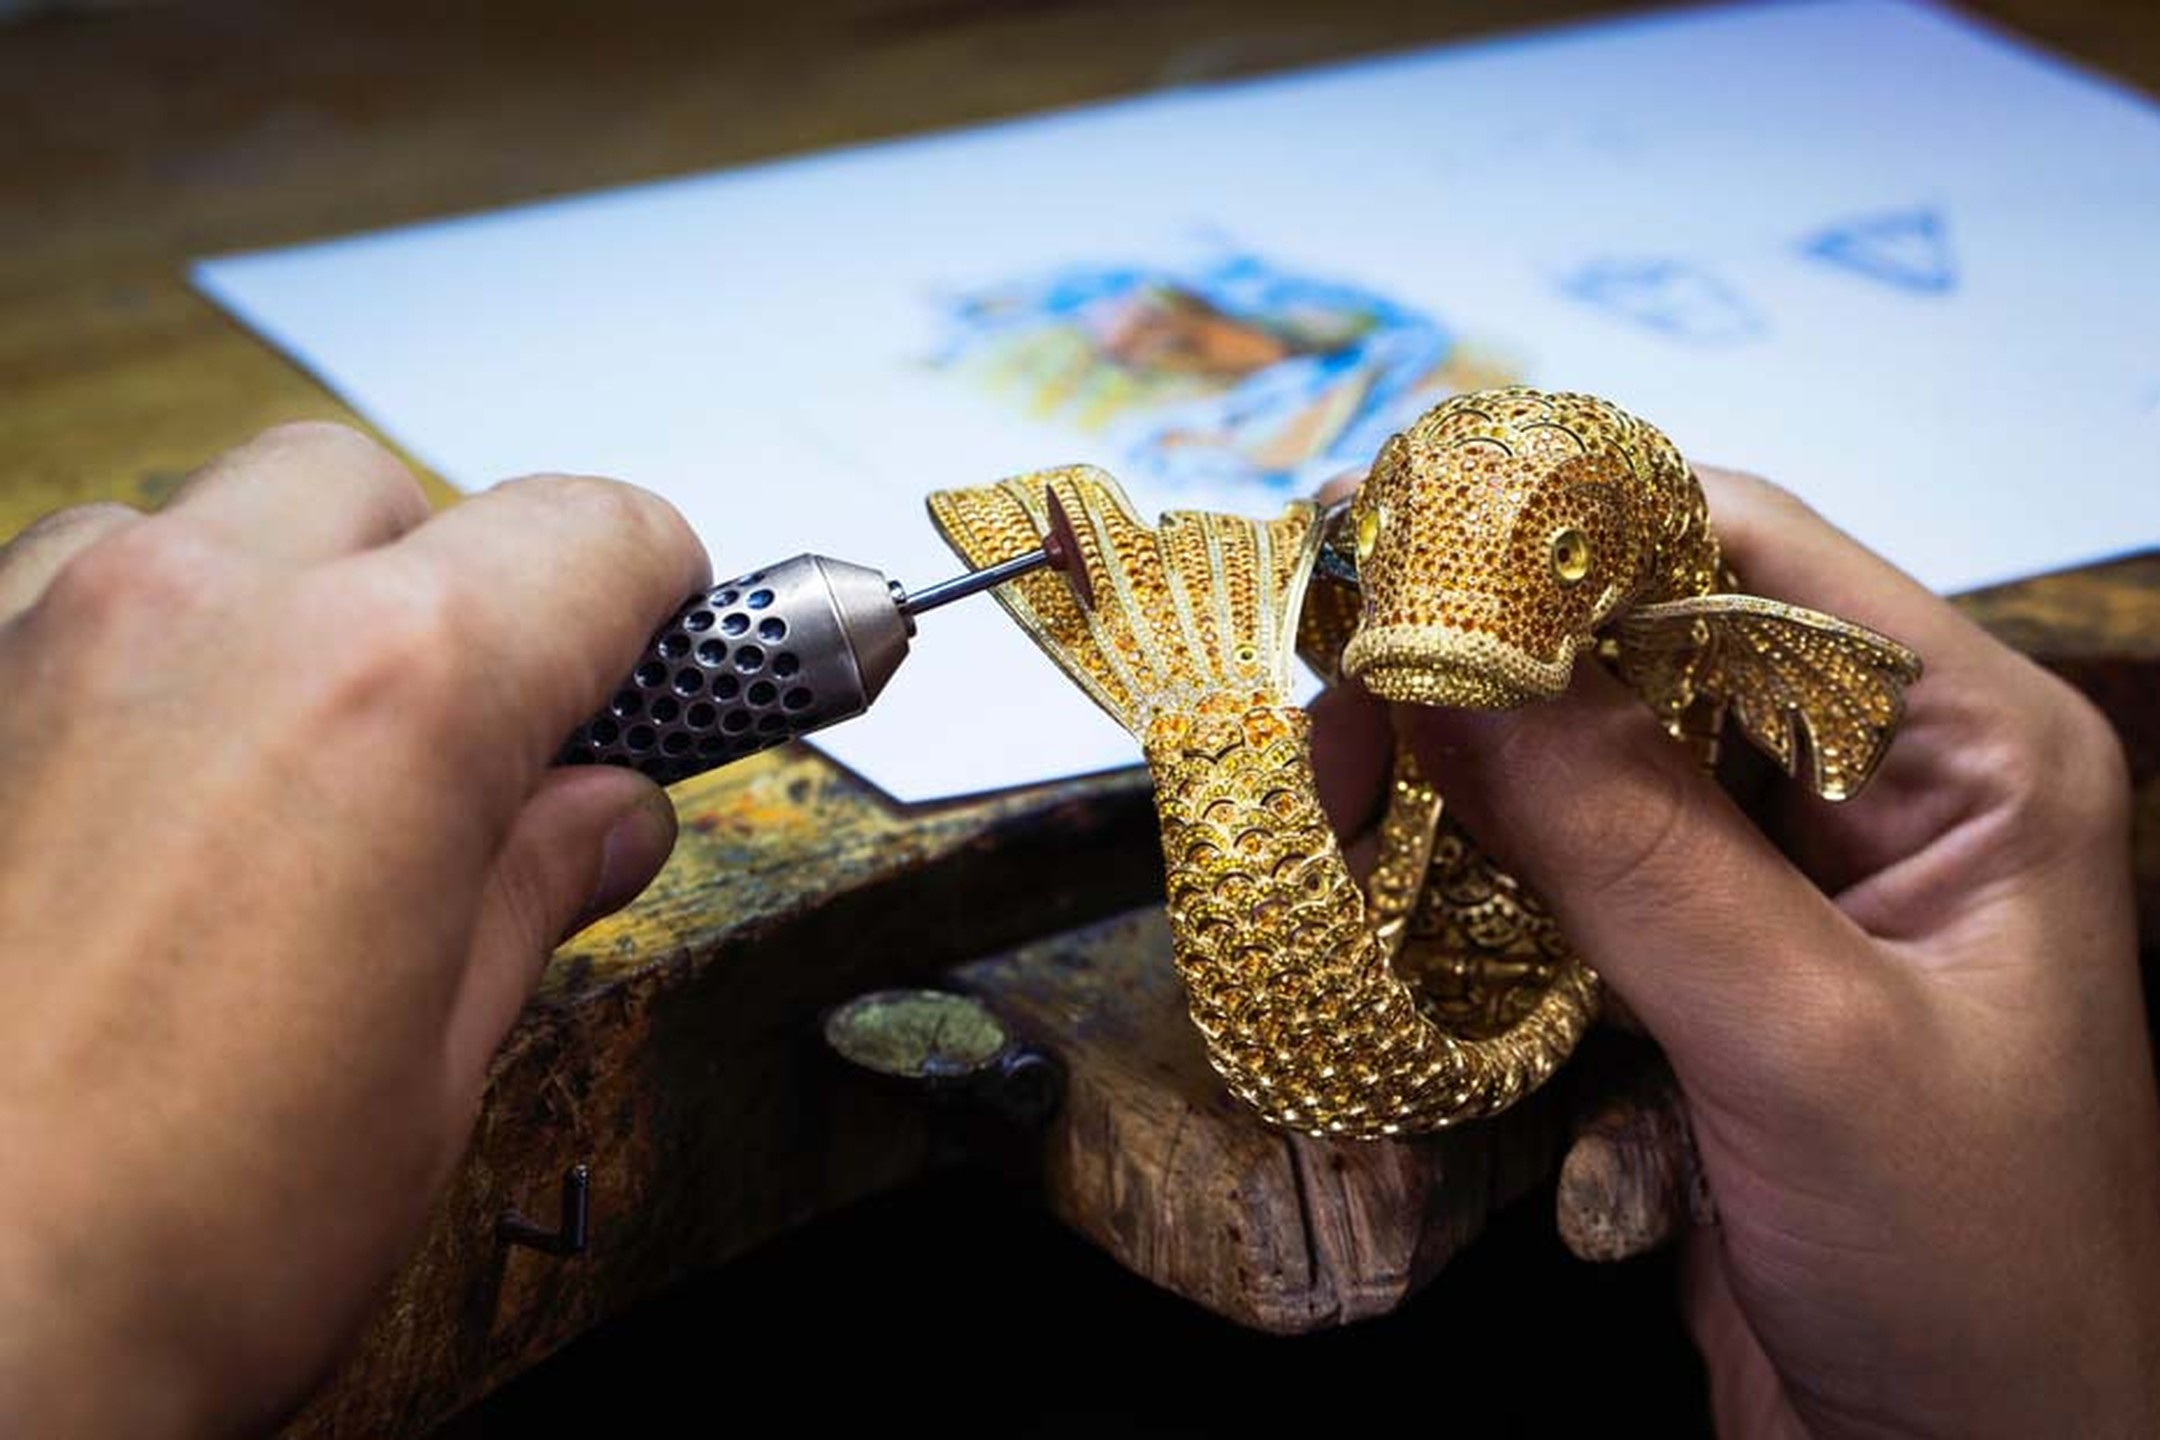 A jeweller polishing the Carpe Koï's tail at the Van Cleef & Arpels ateliers situated on Place Vendôme, Paris.